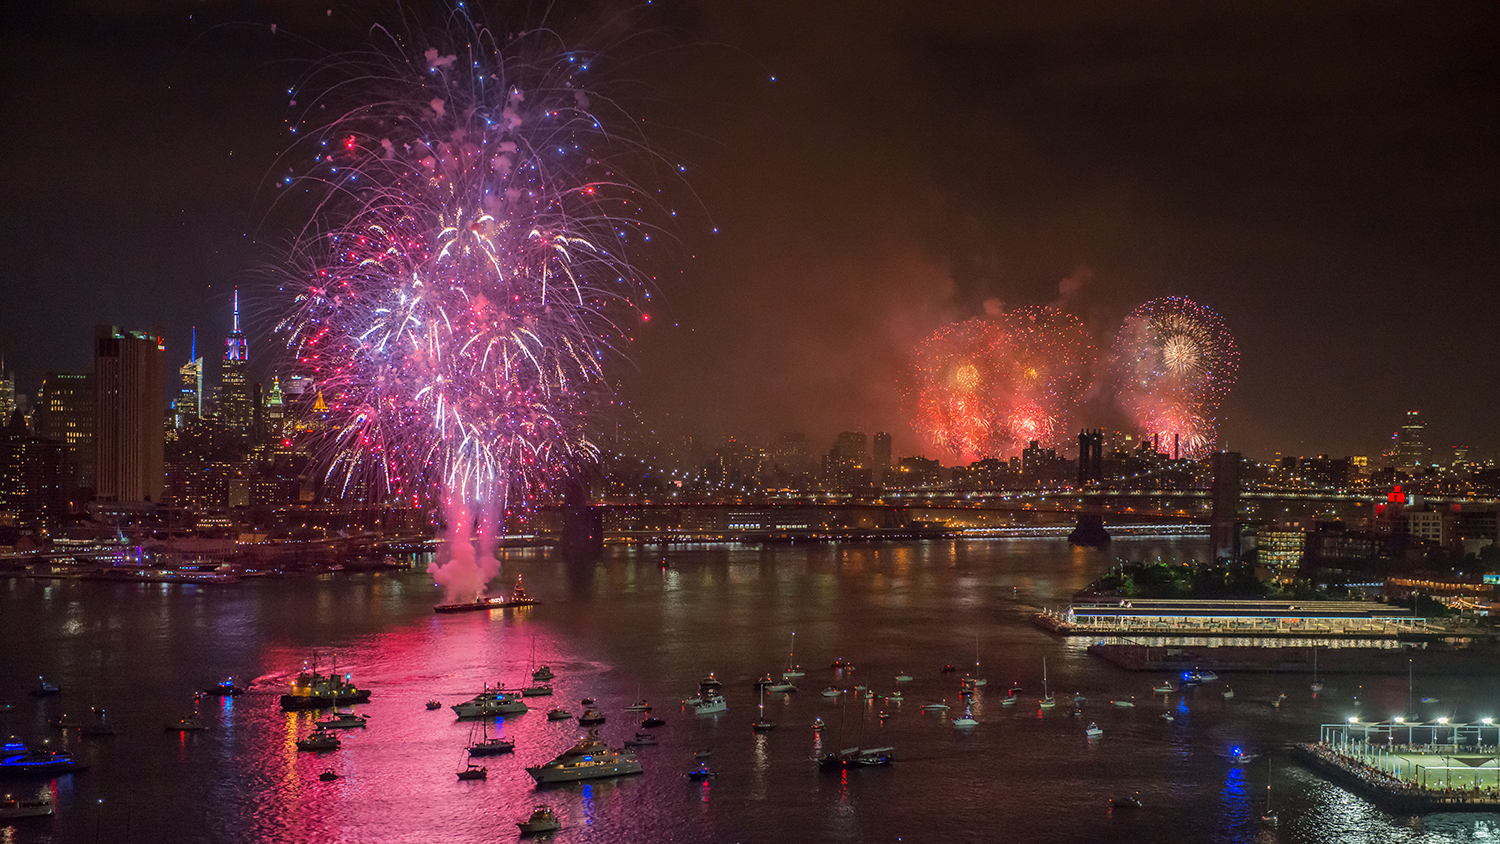 Relive the 4th of July fireworks with these stunning aerial photos